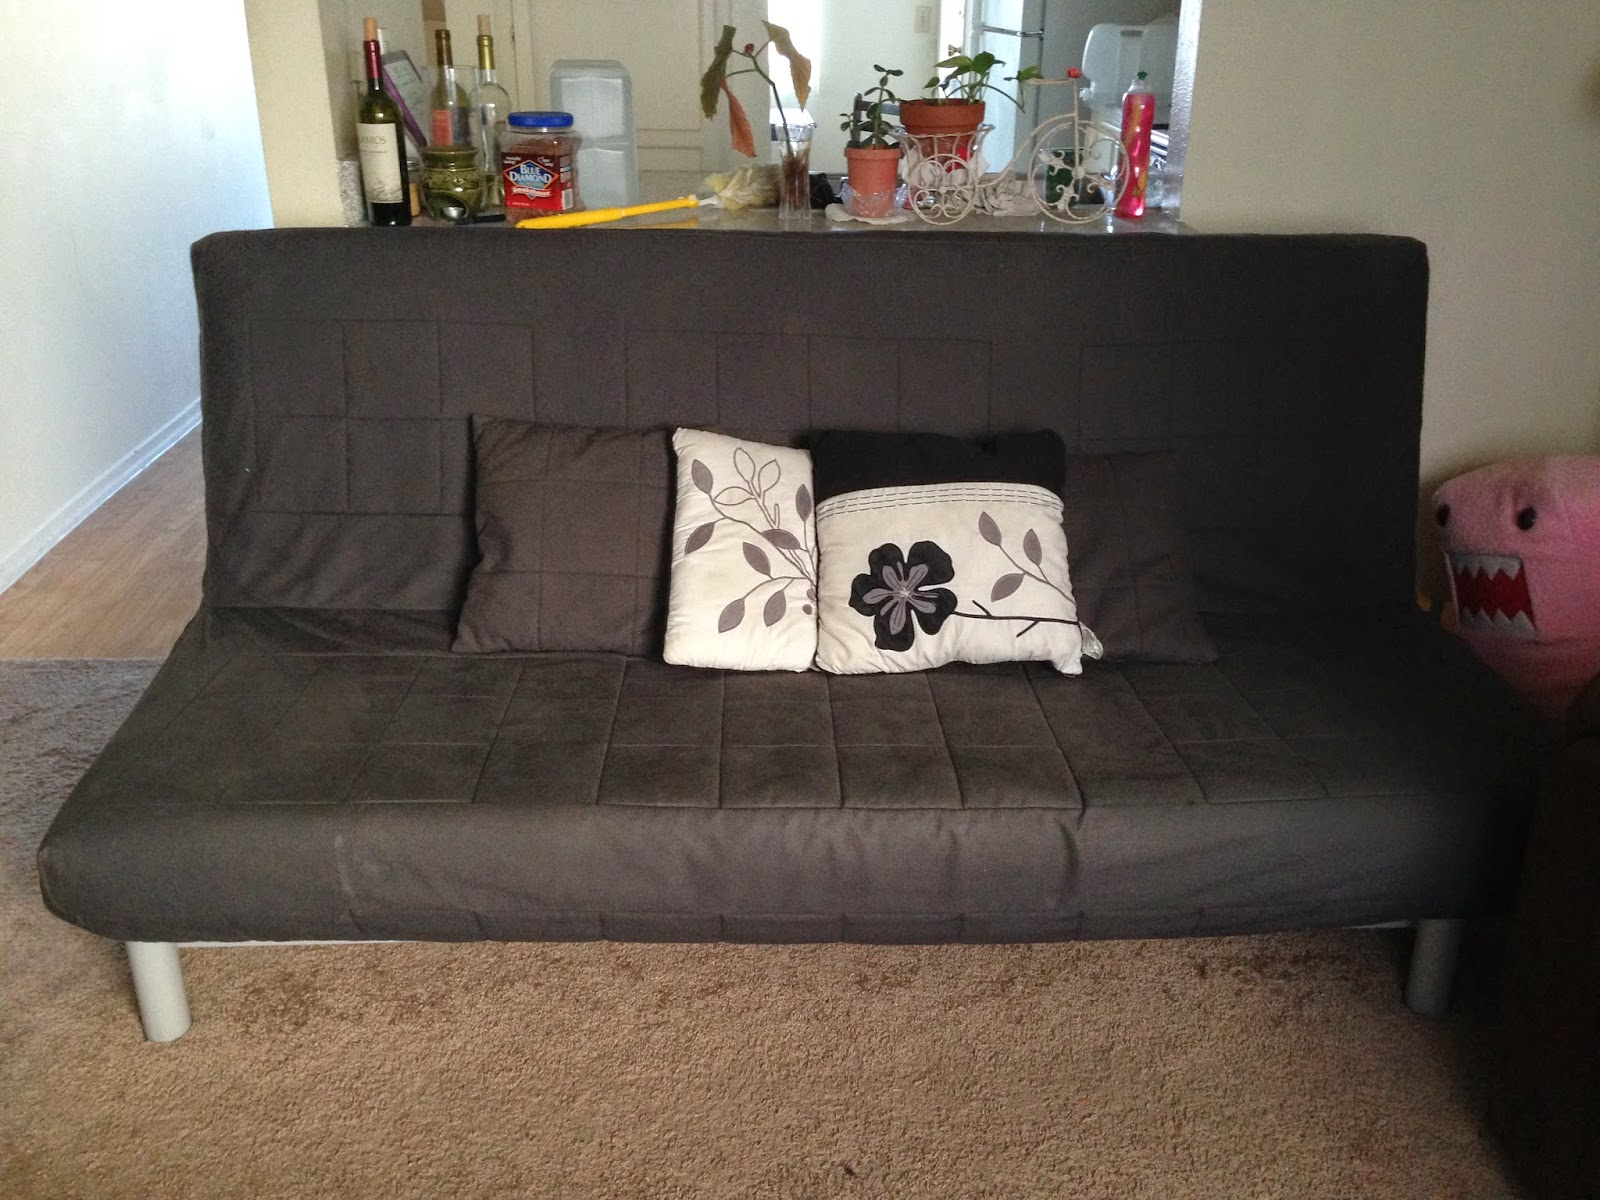 Ikea Used Furniture after college yard sale - cheap furniture, cheap items, all cheap